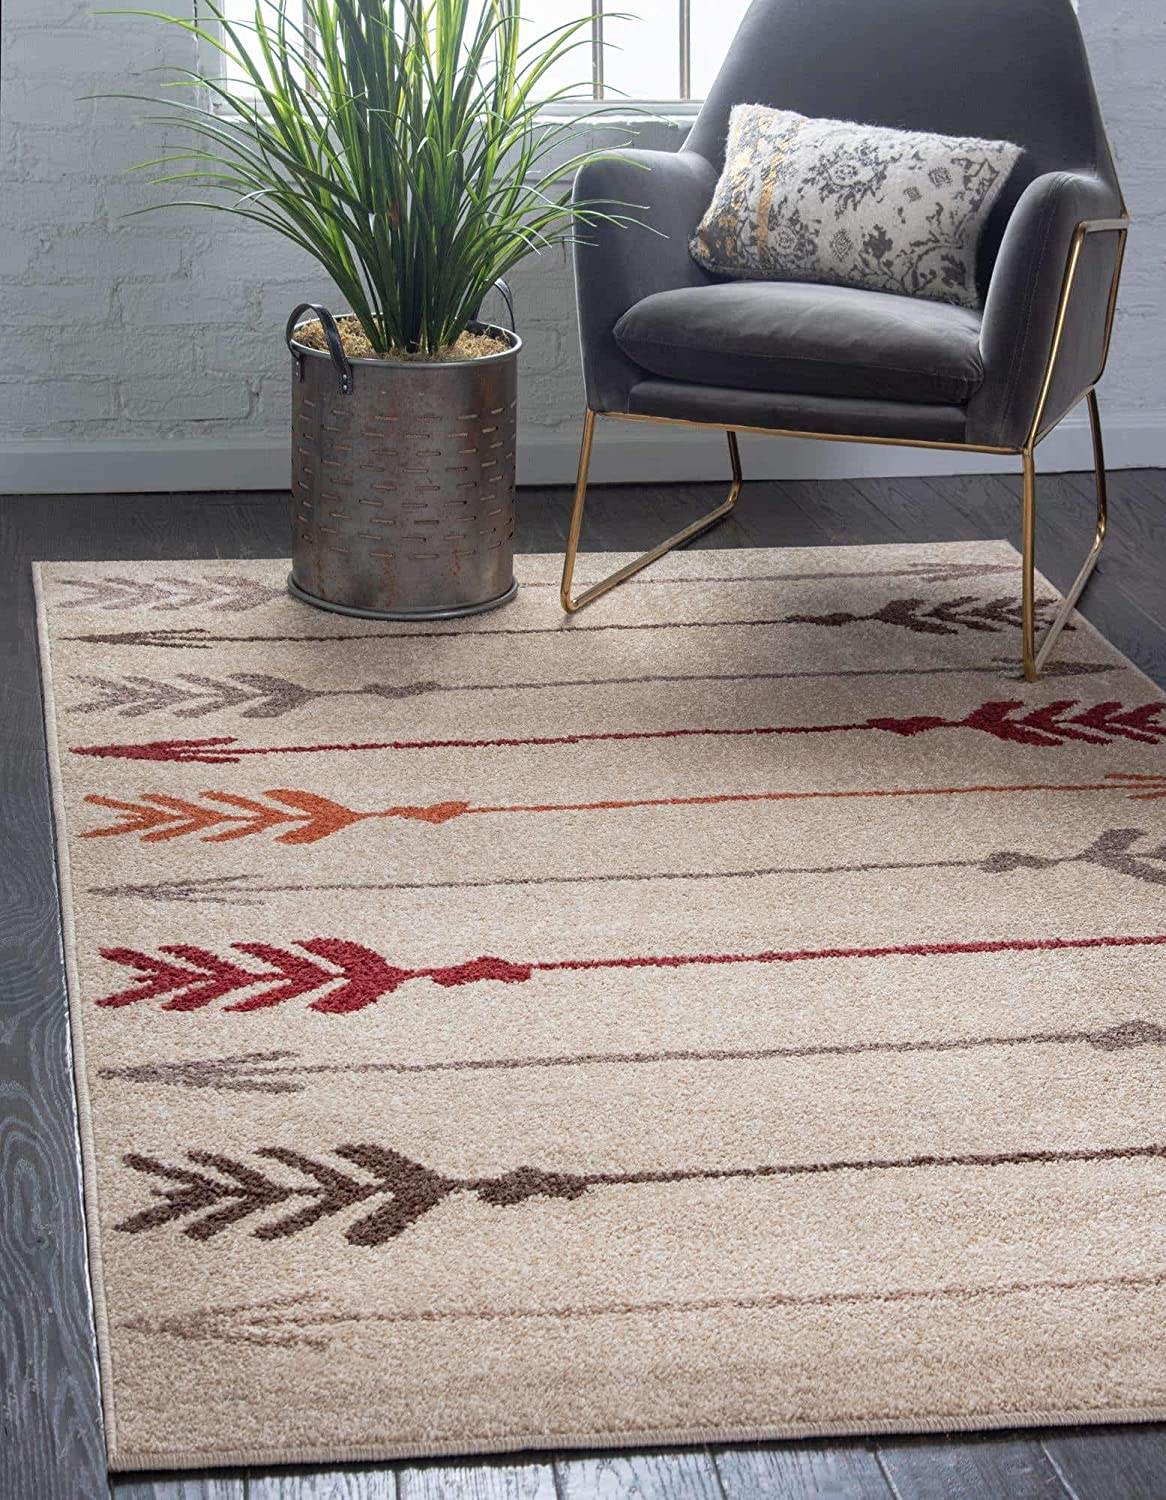 Unique Loom Autumn El Paso Mall Collection Modern Area Toned Free Shipping Cheap Bargain Gift Arrows Rug Warm